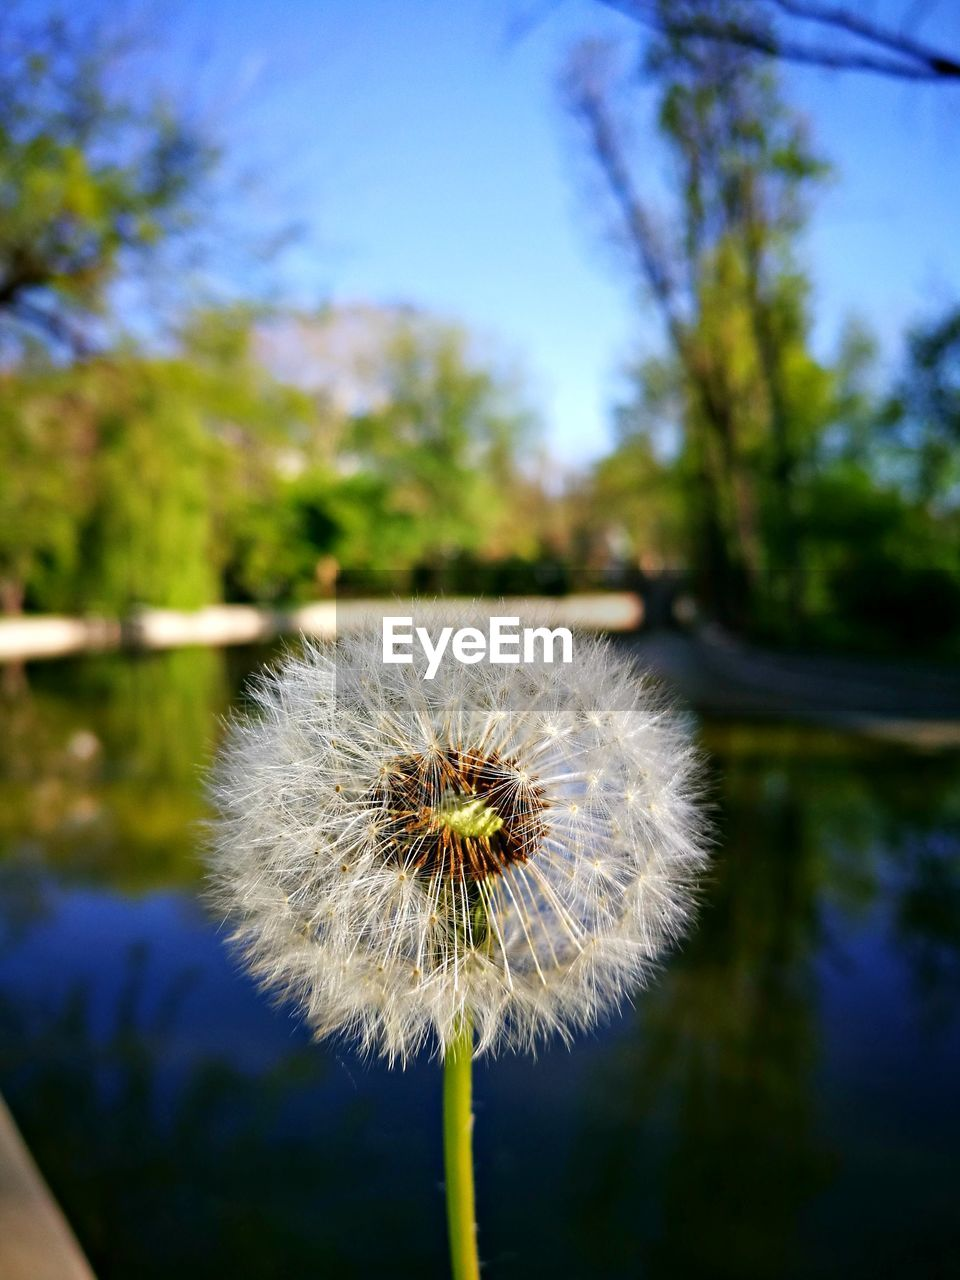 plant, flower, flowering plant, fragility, freshness, vulnerability, beauty in nature, dandelion, focus on foreground, growth, inflorescence, close-up, flower head, nature, day, no people, sky, outdoors, blue, dandelion seed, softness